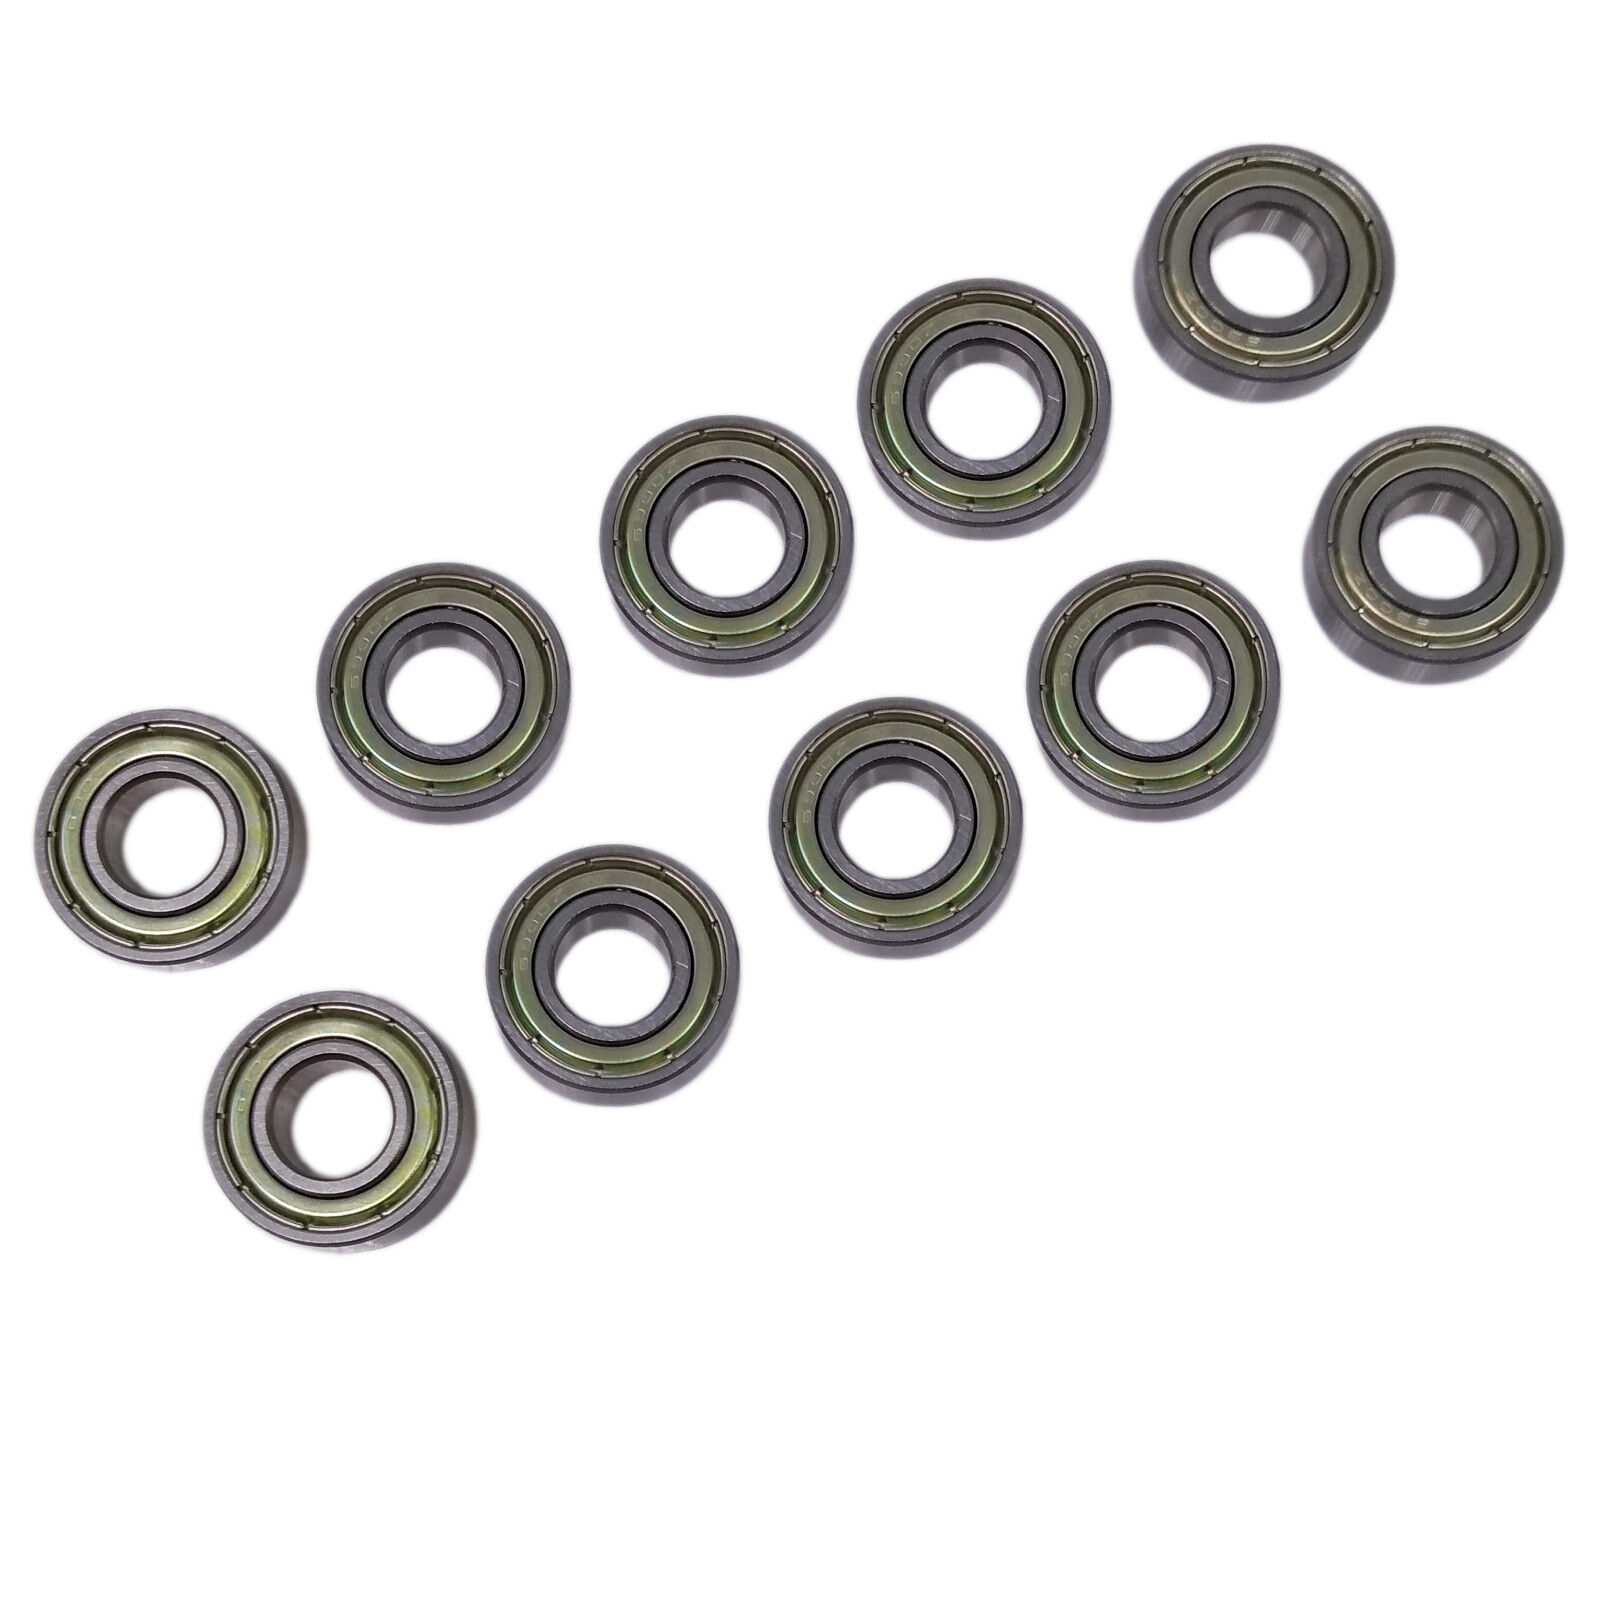 10pcs Shielded Model Flange Bearing 12 x 21 x 5mm F6801zz